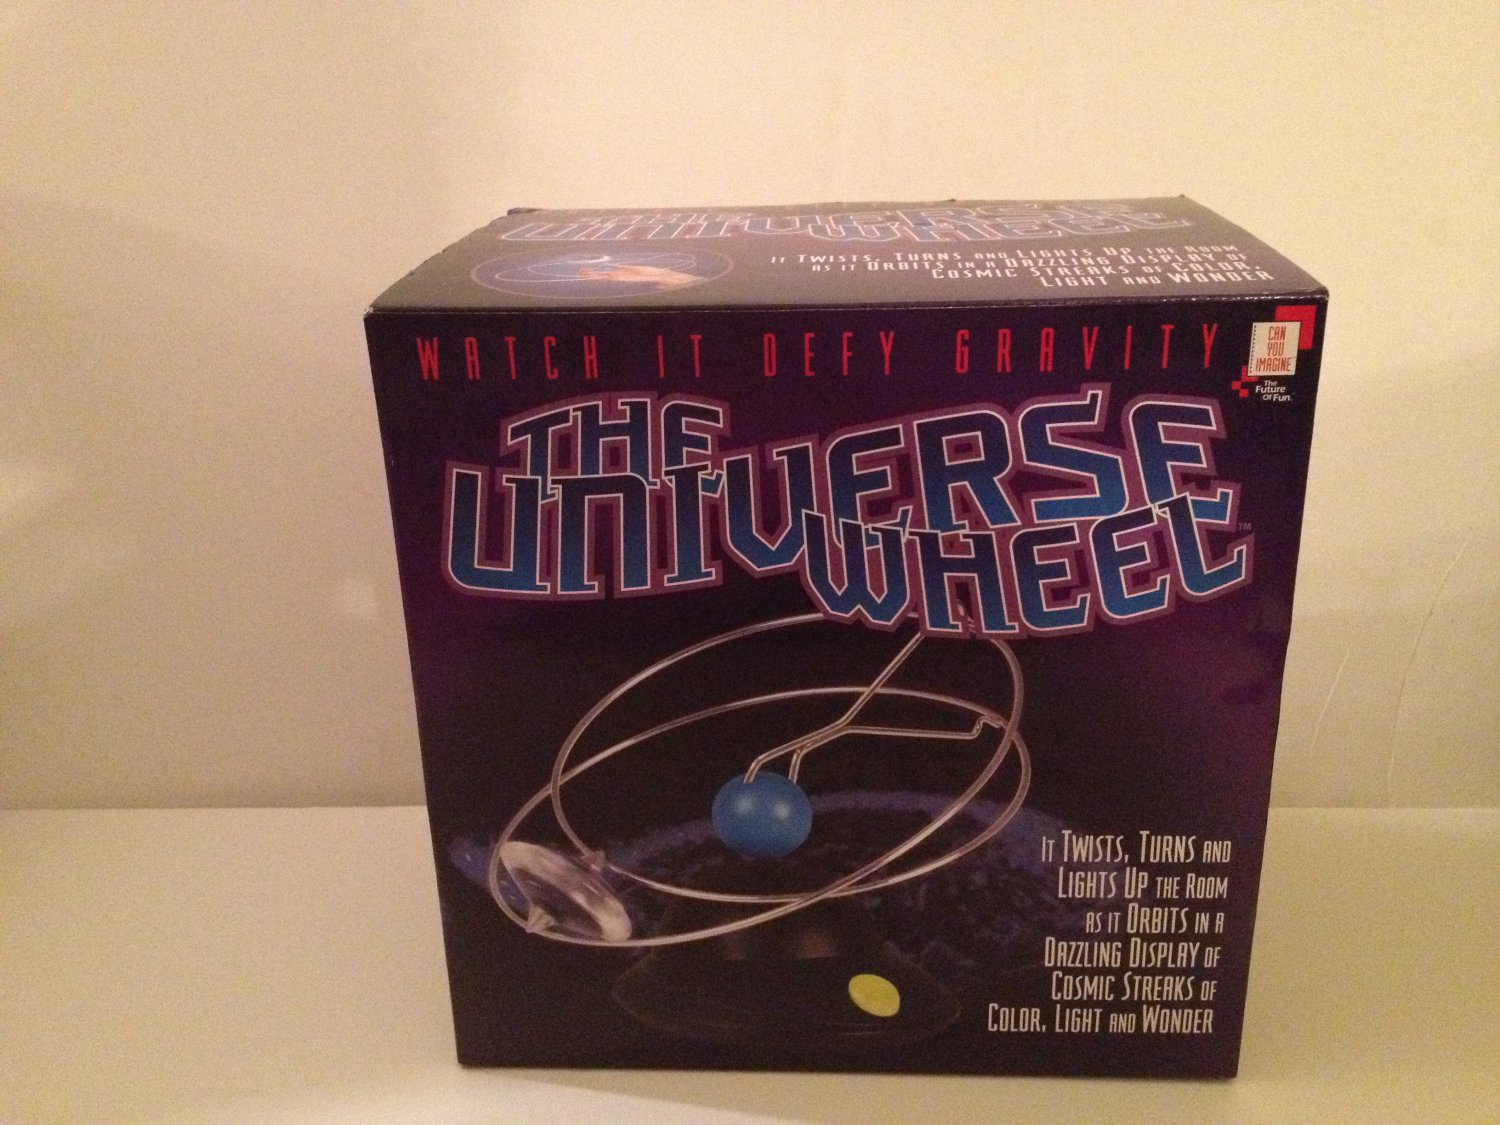 Universe Wheel Watch It Defy Gravity  Twists Turns & Lights Up The Room by Can You Imagine